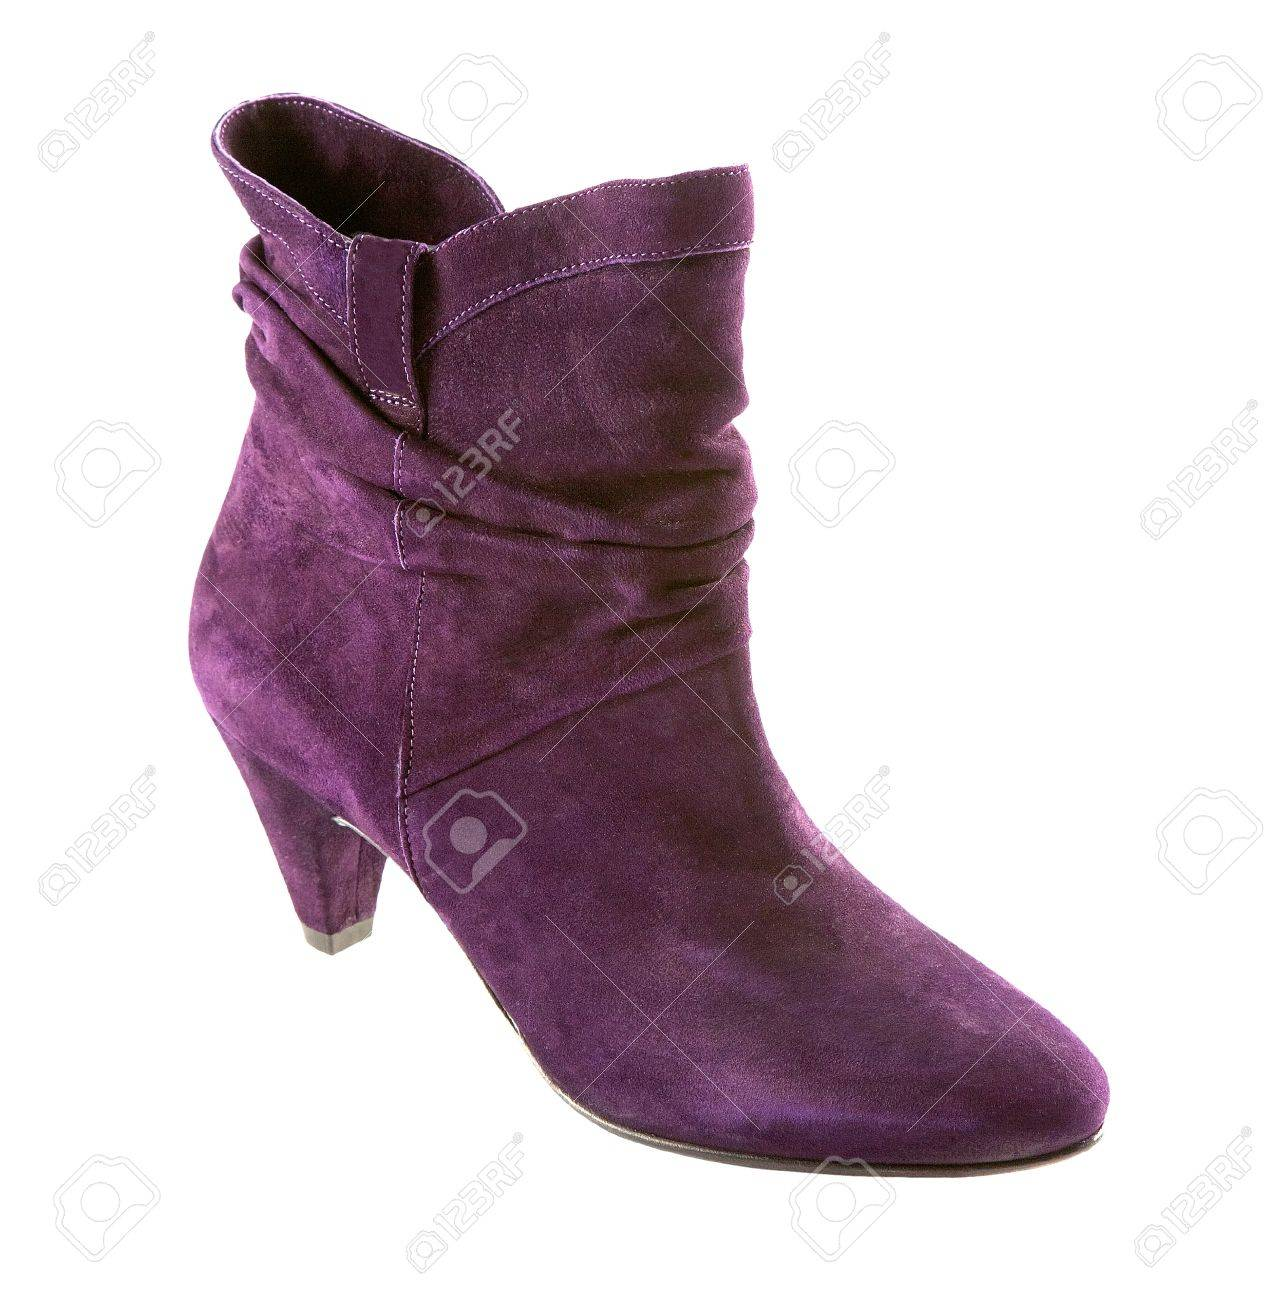 Purple Suede High Heel Boots